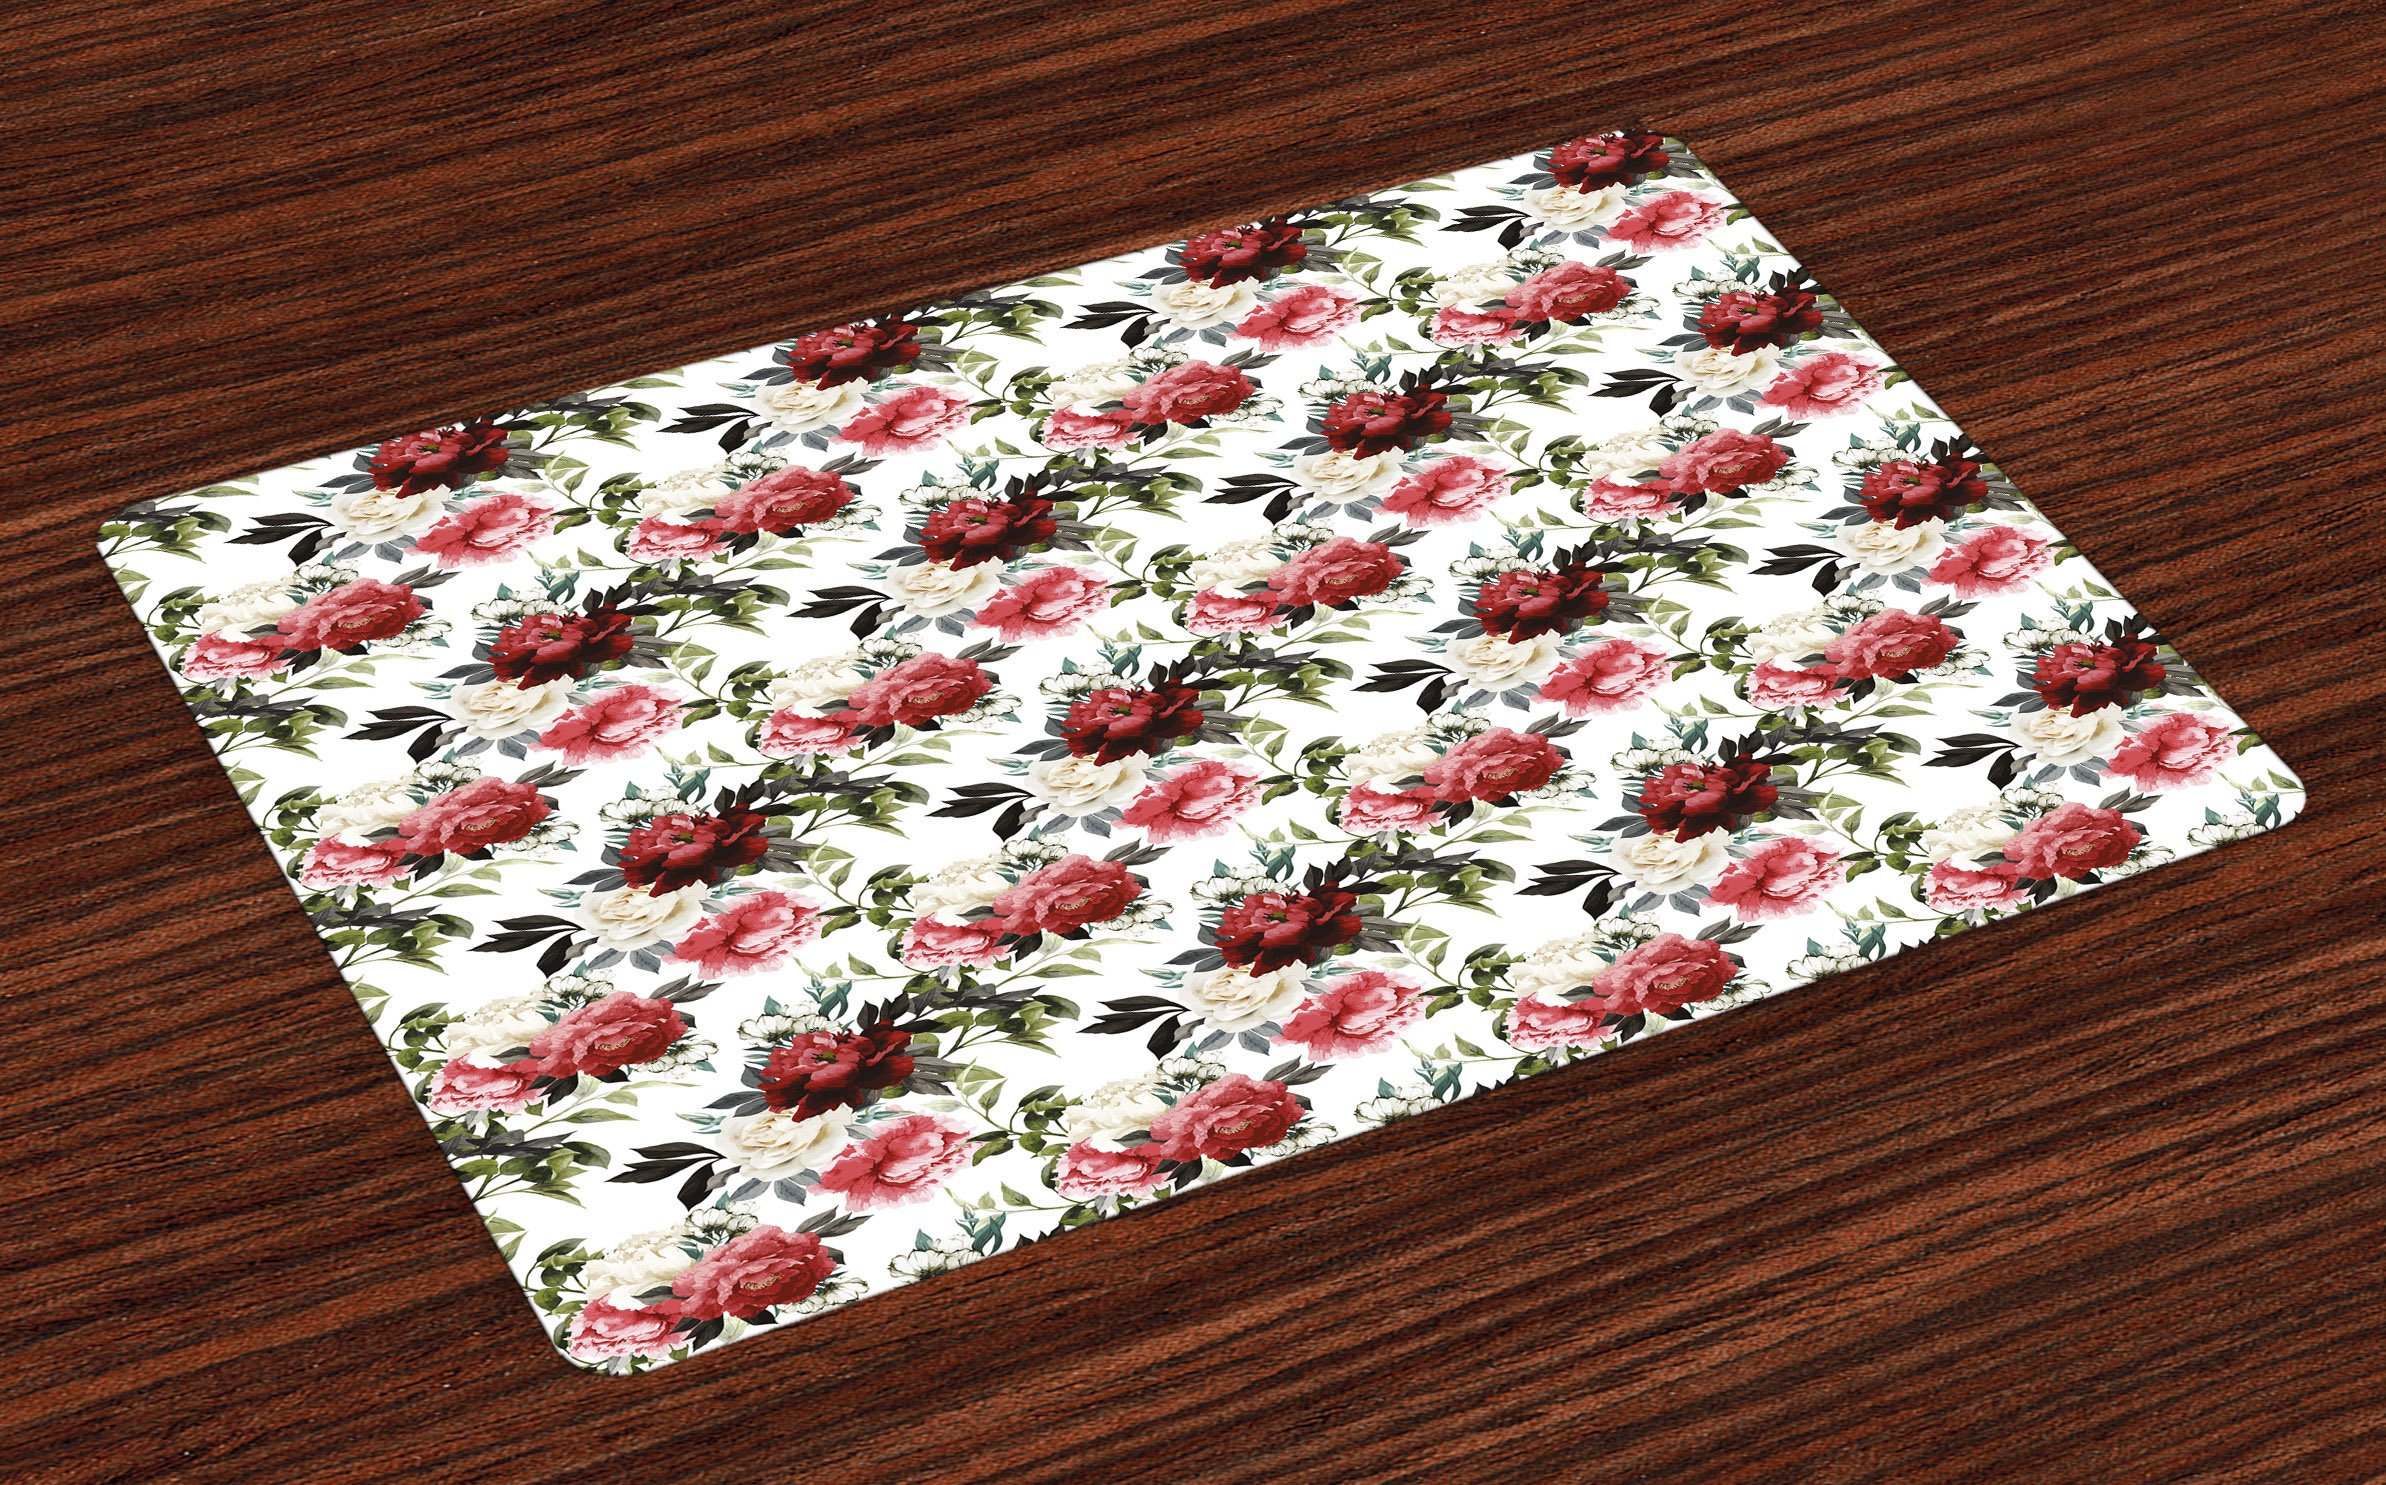 Ambesonne Shabby Chic Place Mats Set of 4, Country Style Floral Flower Roses Watercolor Image Art, Washable Fabric Placemats for Dining Room Kitchen Table Decor, Cream Dark Coral Maroon and Green by Ambesonne (Image #1)